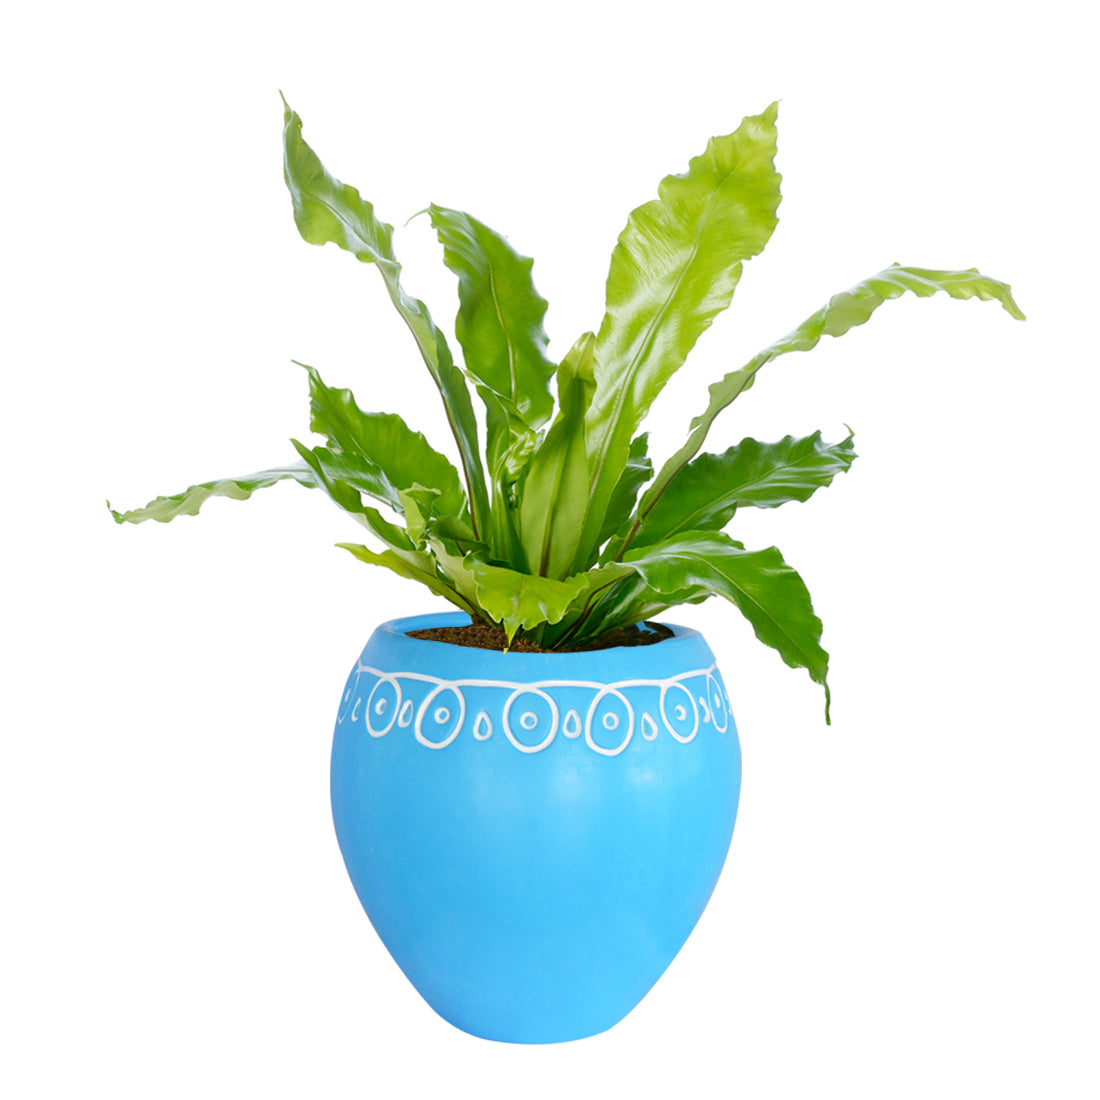 Decorative garden planter pots